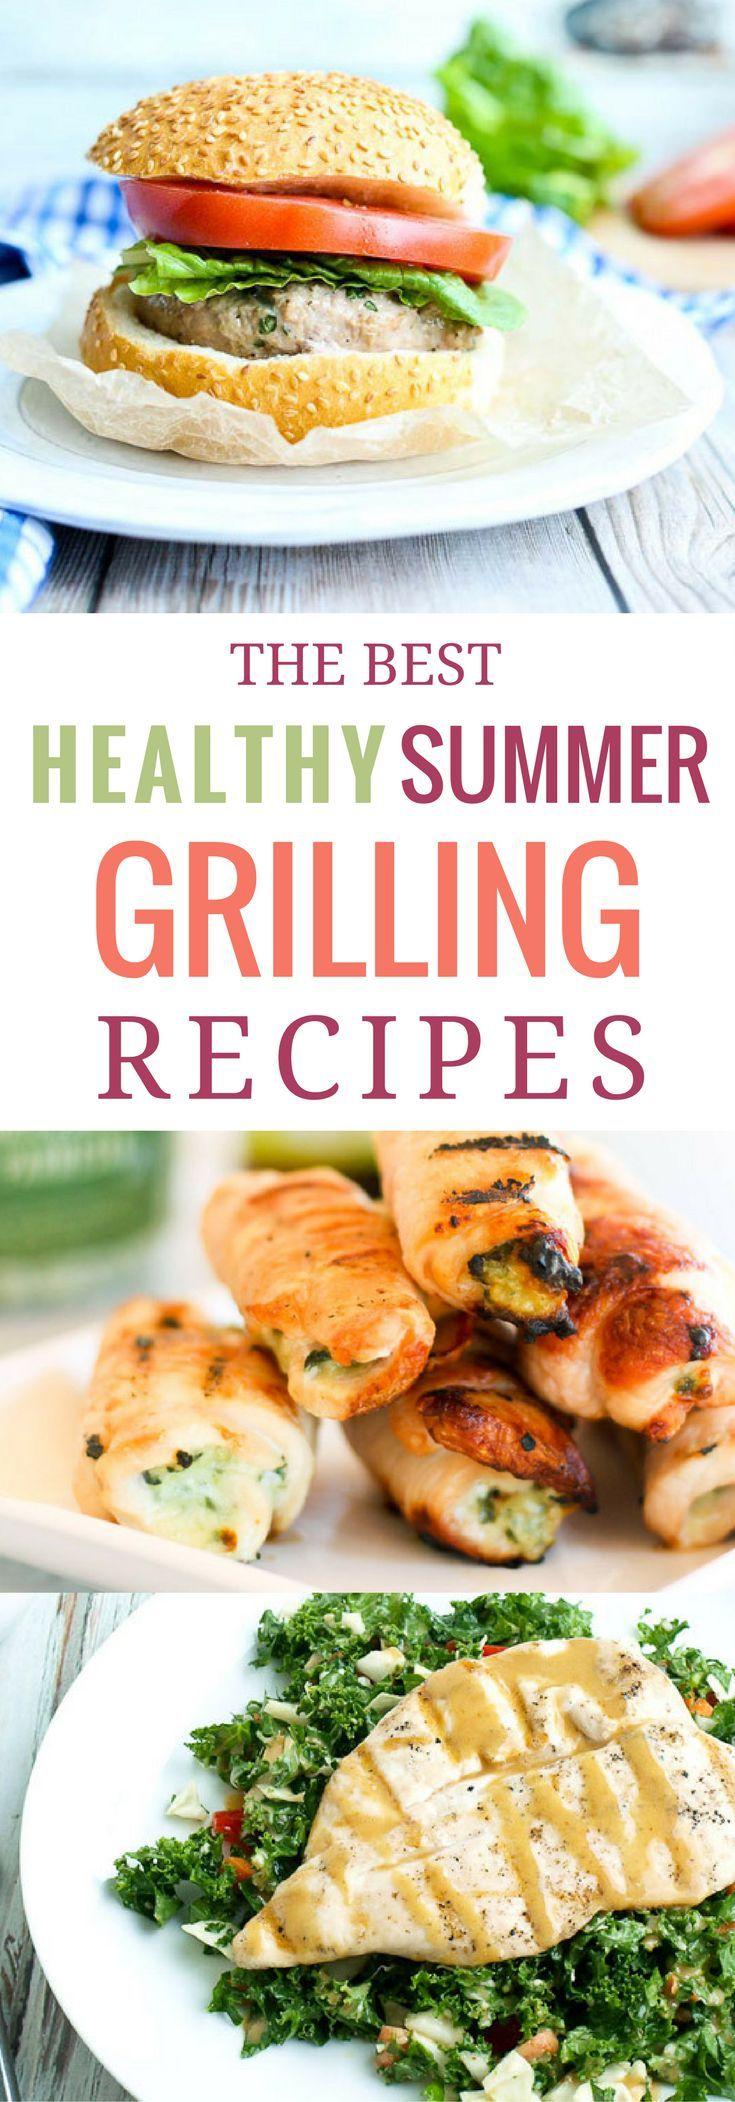 If you're looking for something different than burgers and hot dogs to try on the grill this summer, definitely check out these healthy summer grilling recipes. Every recipe is quick, easy and family-friendly. My family loves the grilled salmon, grilled c